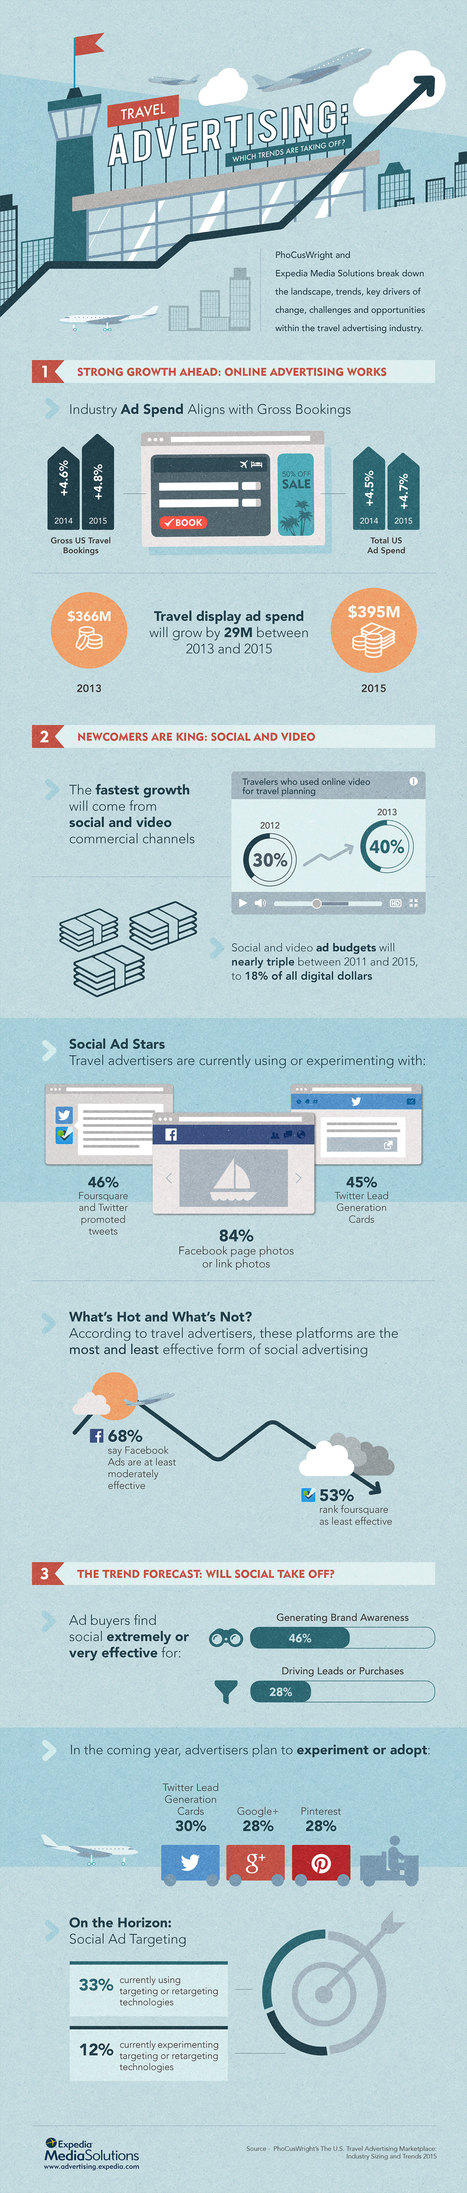 INFOGRAPHIC: Facebook's Role in Travel Advertising | MarketingHits | Scoop.it